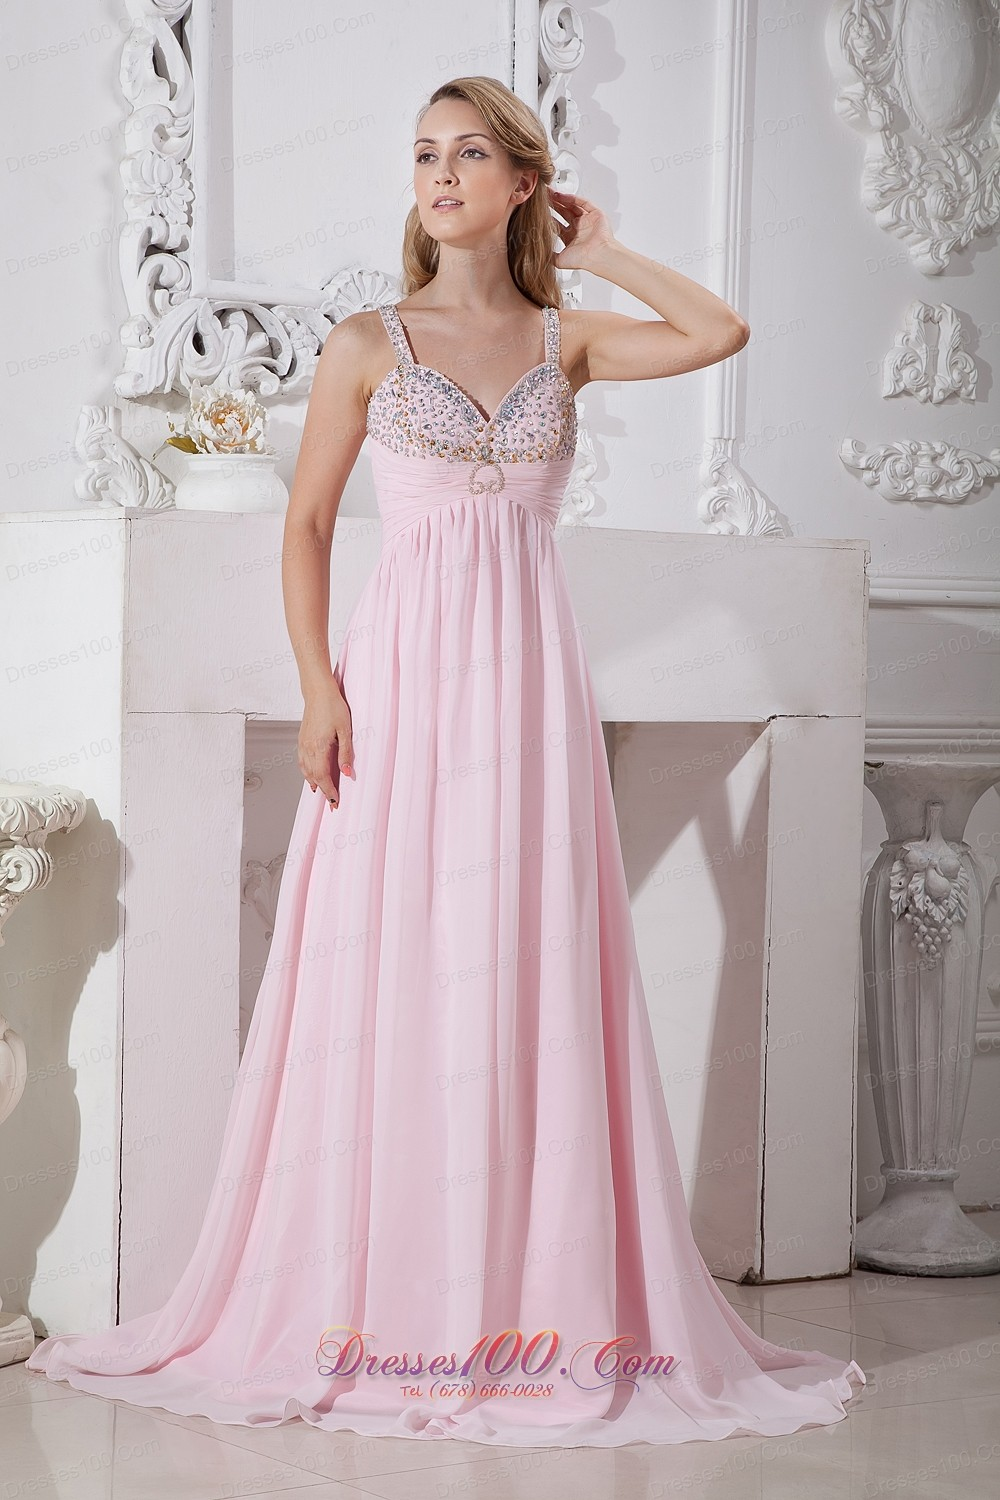 Light Pink Straps 2013 Prom Dress Beading |Discount Prom Dresses